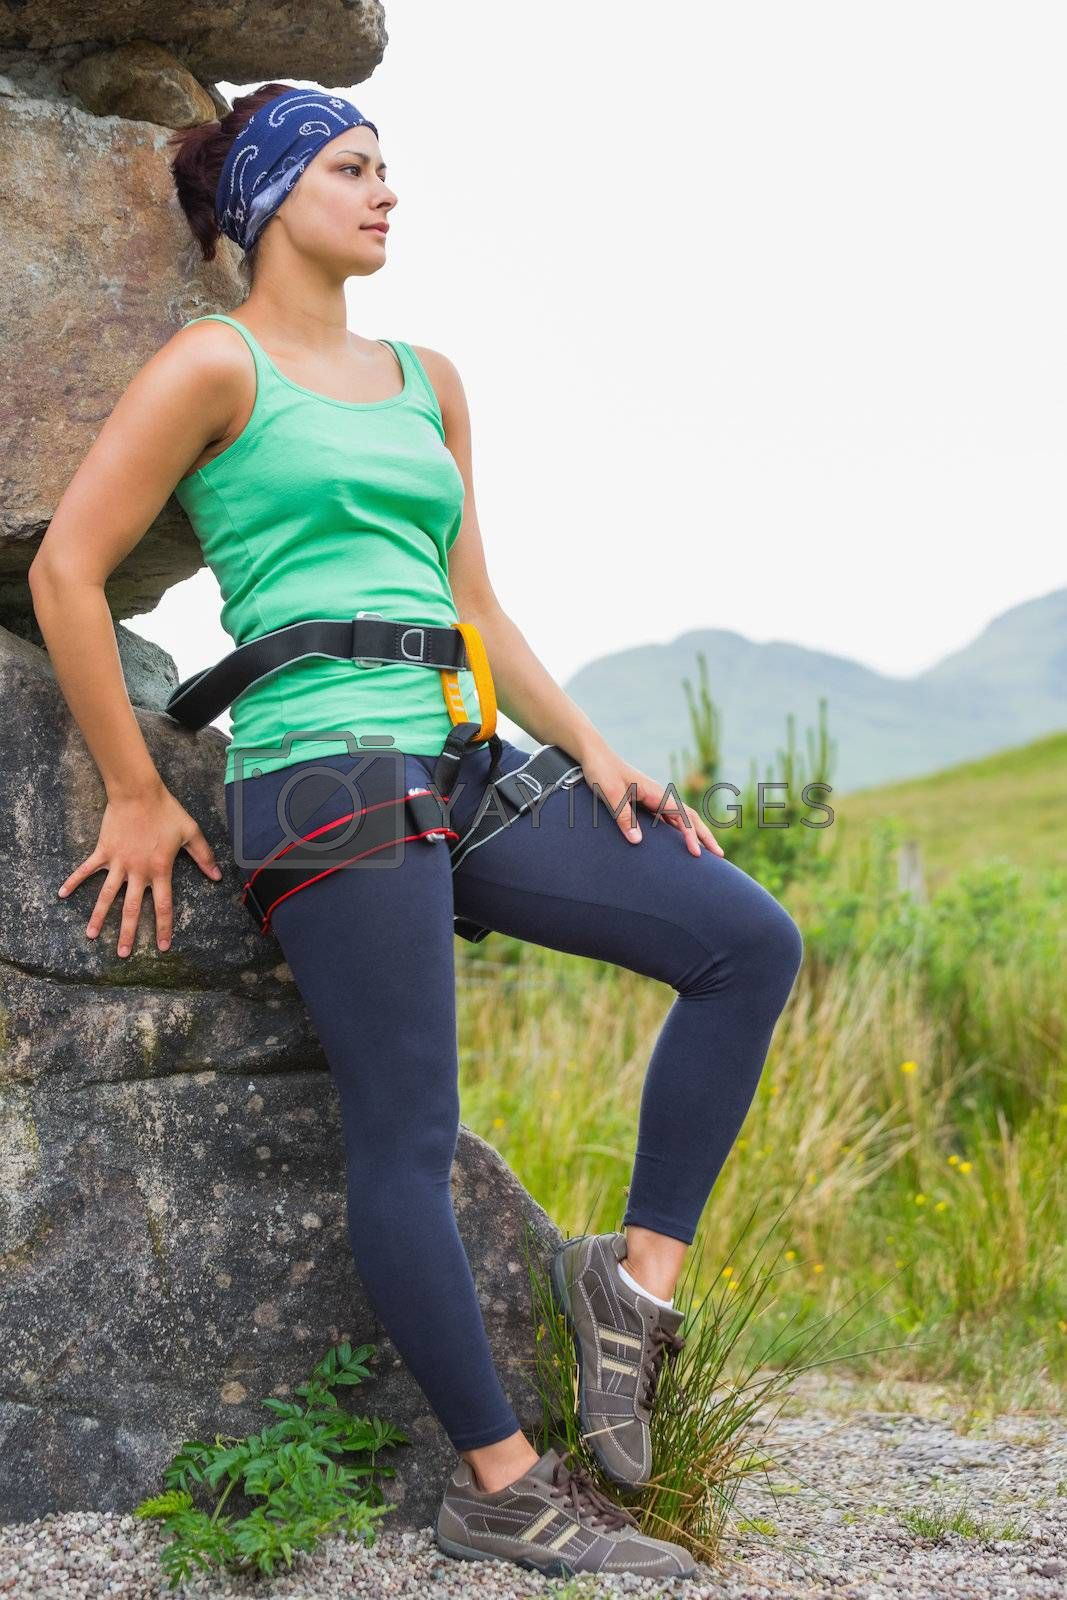 Attractive female rock climber leaning on rock face by Wavebreakmedia